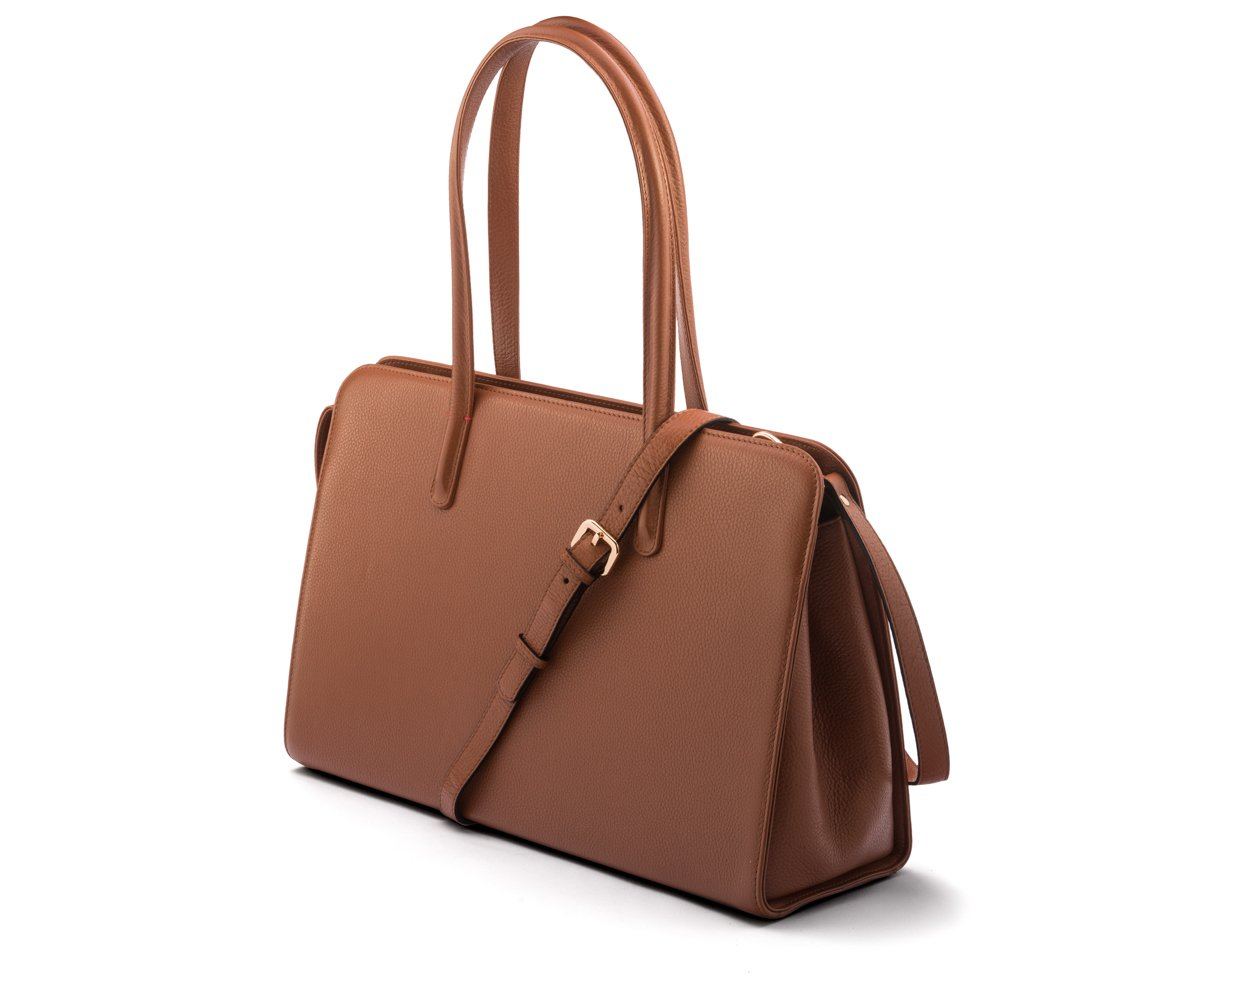 SAGEBROWN Tan Ladies Leather Work Bag